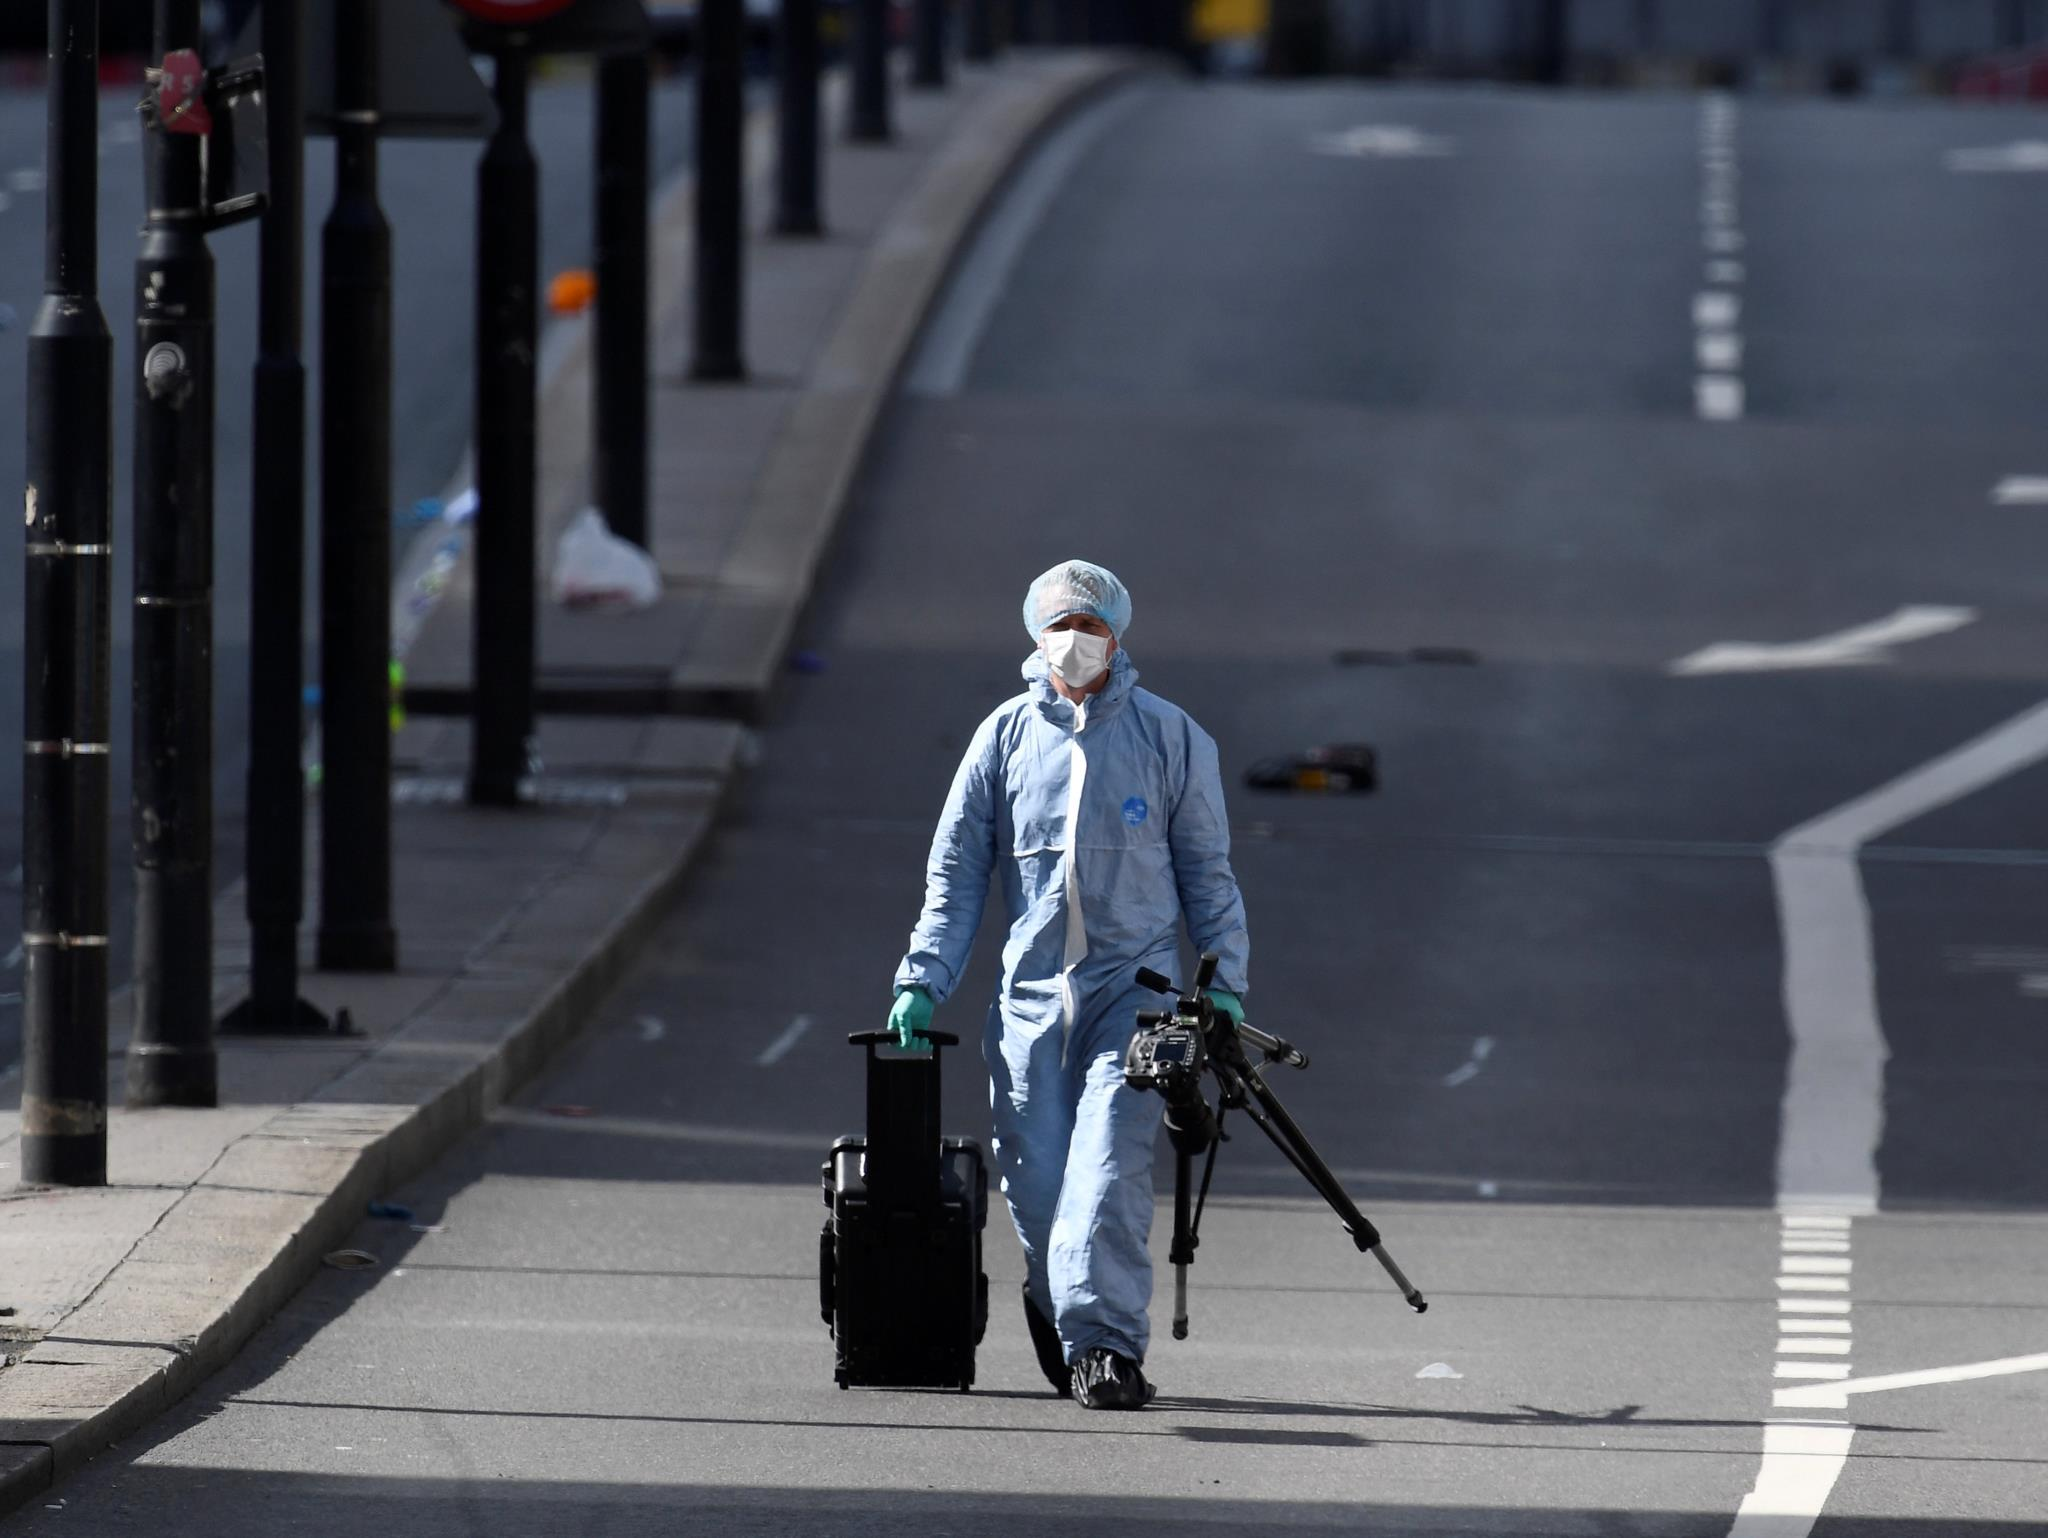 A police forensics investigator works on London Bridge after an attack left 7 people dead and dozens injured in London